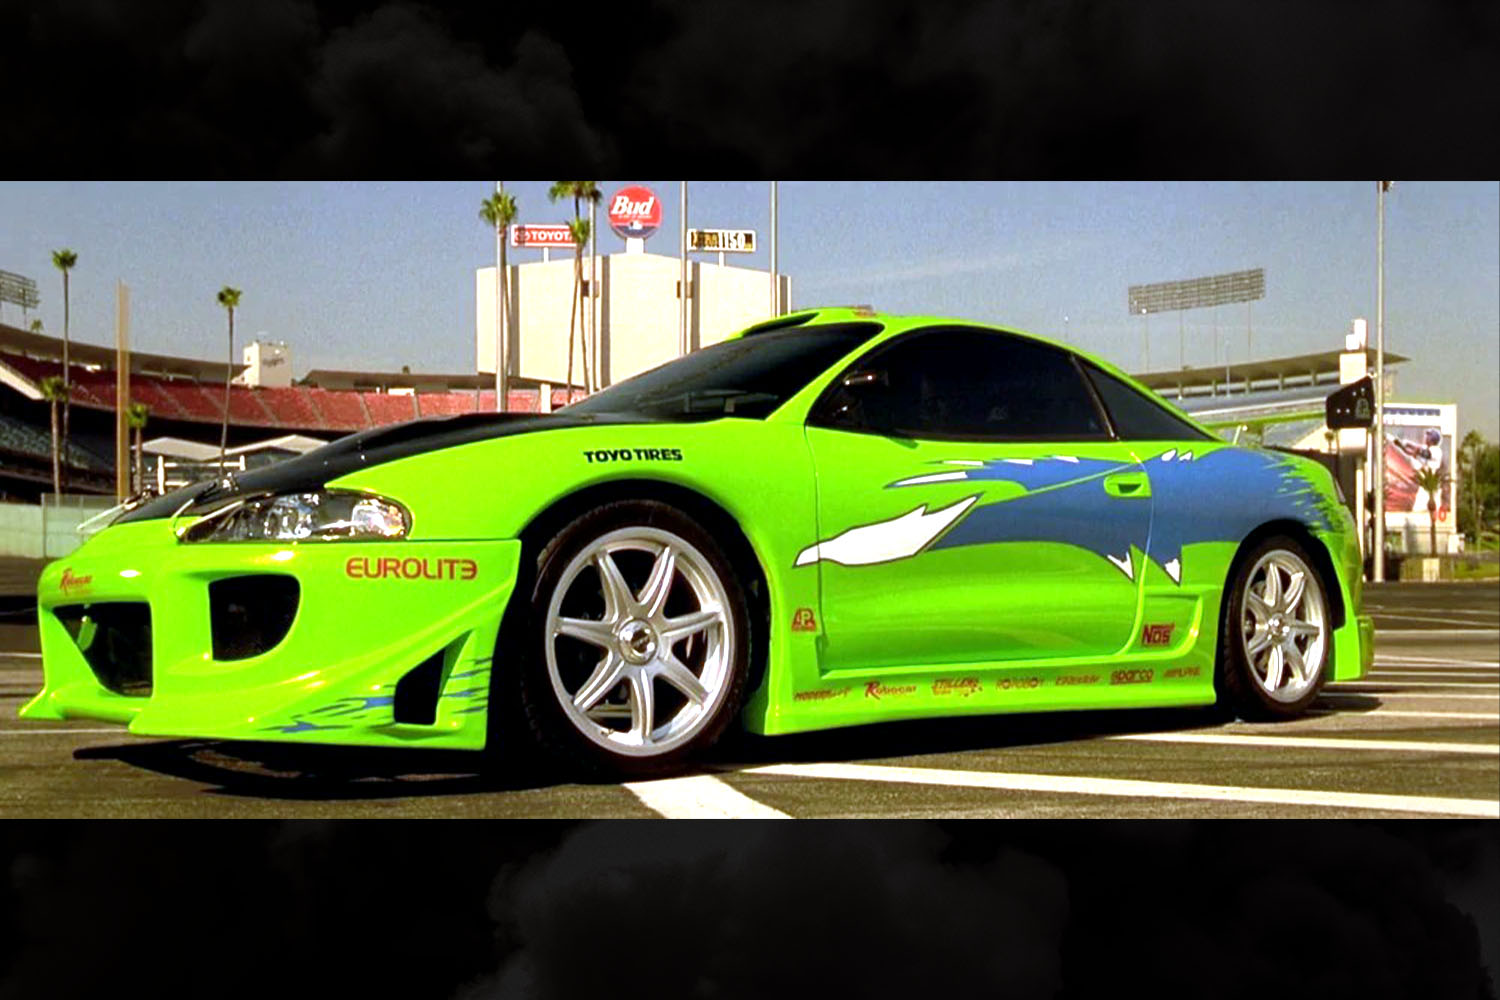 The green 1995 Mitsubishi Eclipse driven by Brian O'Conner (Paul Walker) in The Fast and the Furious, one of the most recognizable cars from the franchise